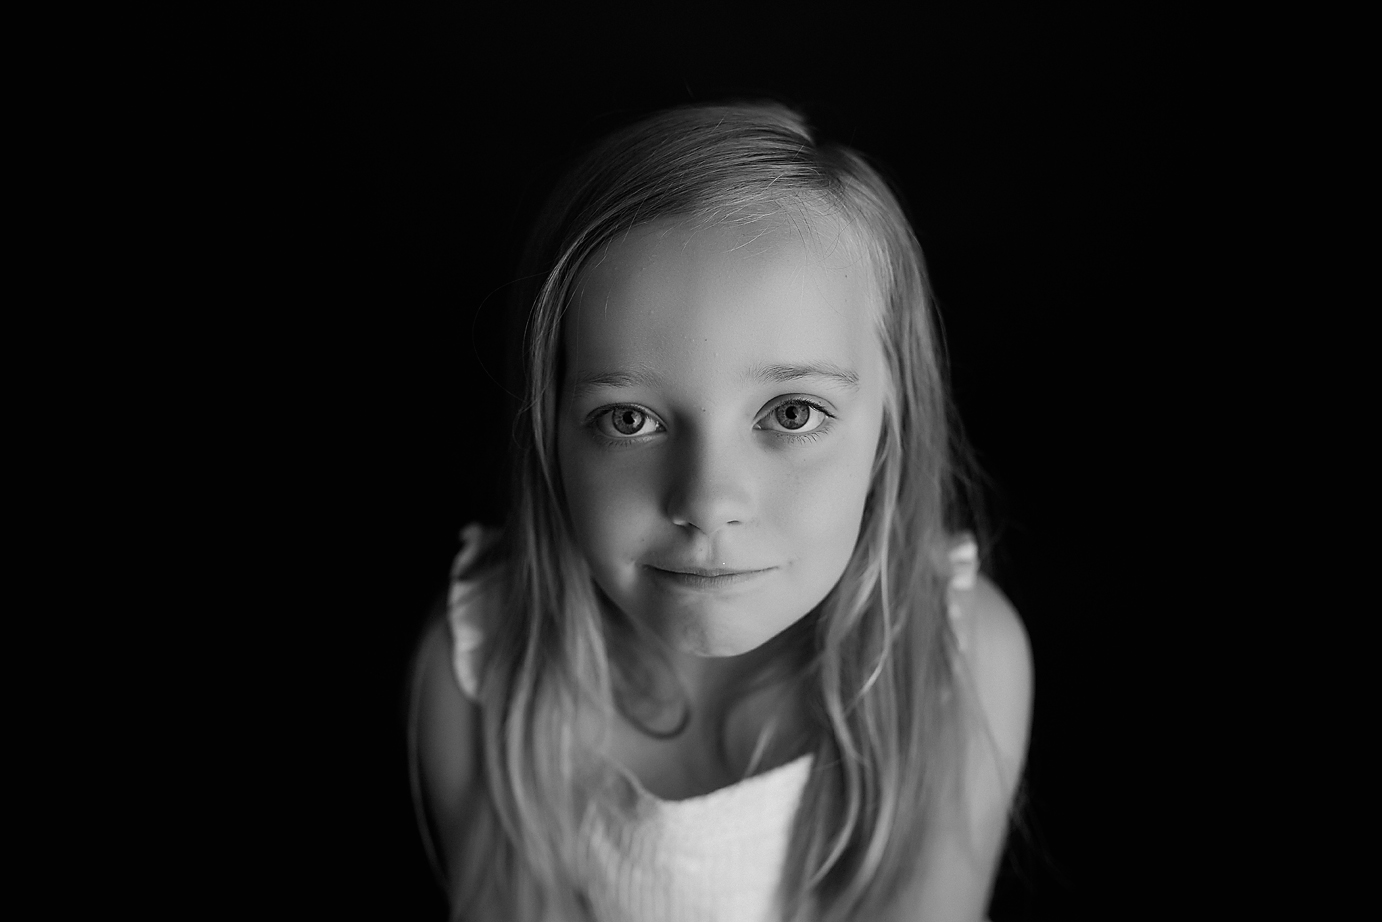 orange-county-child-photography-simplicity-black-and-white-headshot-girl.jpg